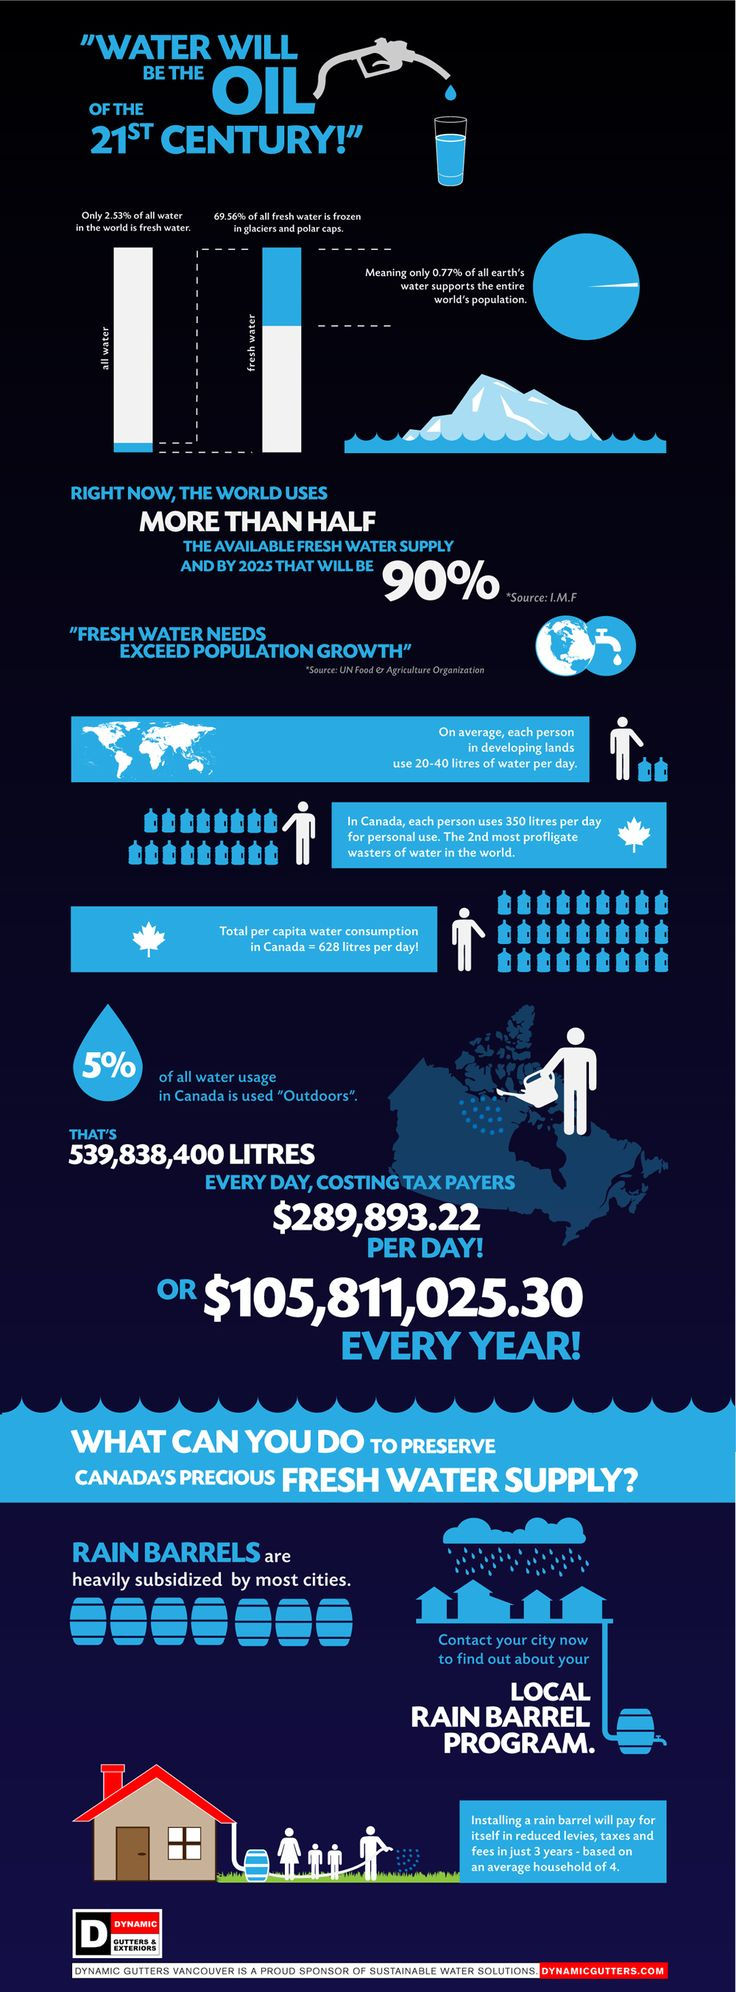 Canadians use 15 times as much water every day than developing countries. Rain Barrels are a sustainable method of water conservation in Vancouver and surrounding areas.